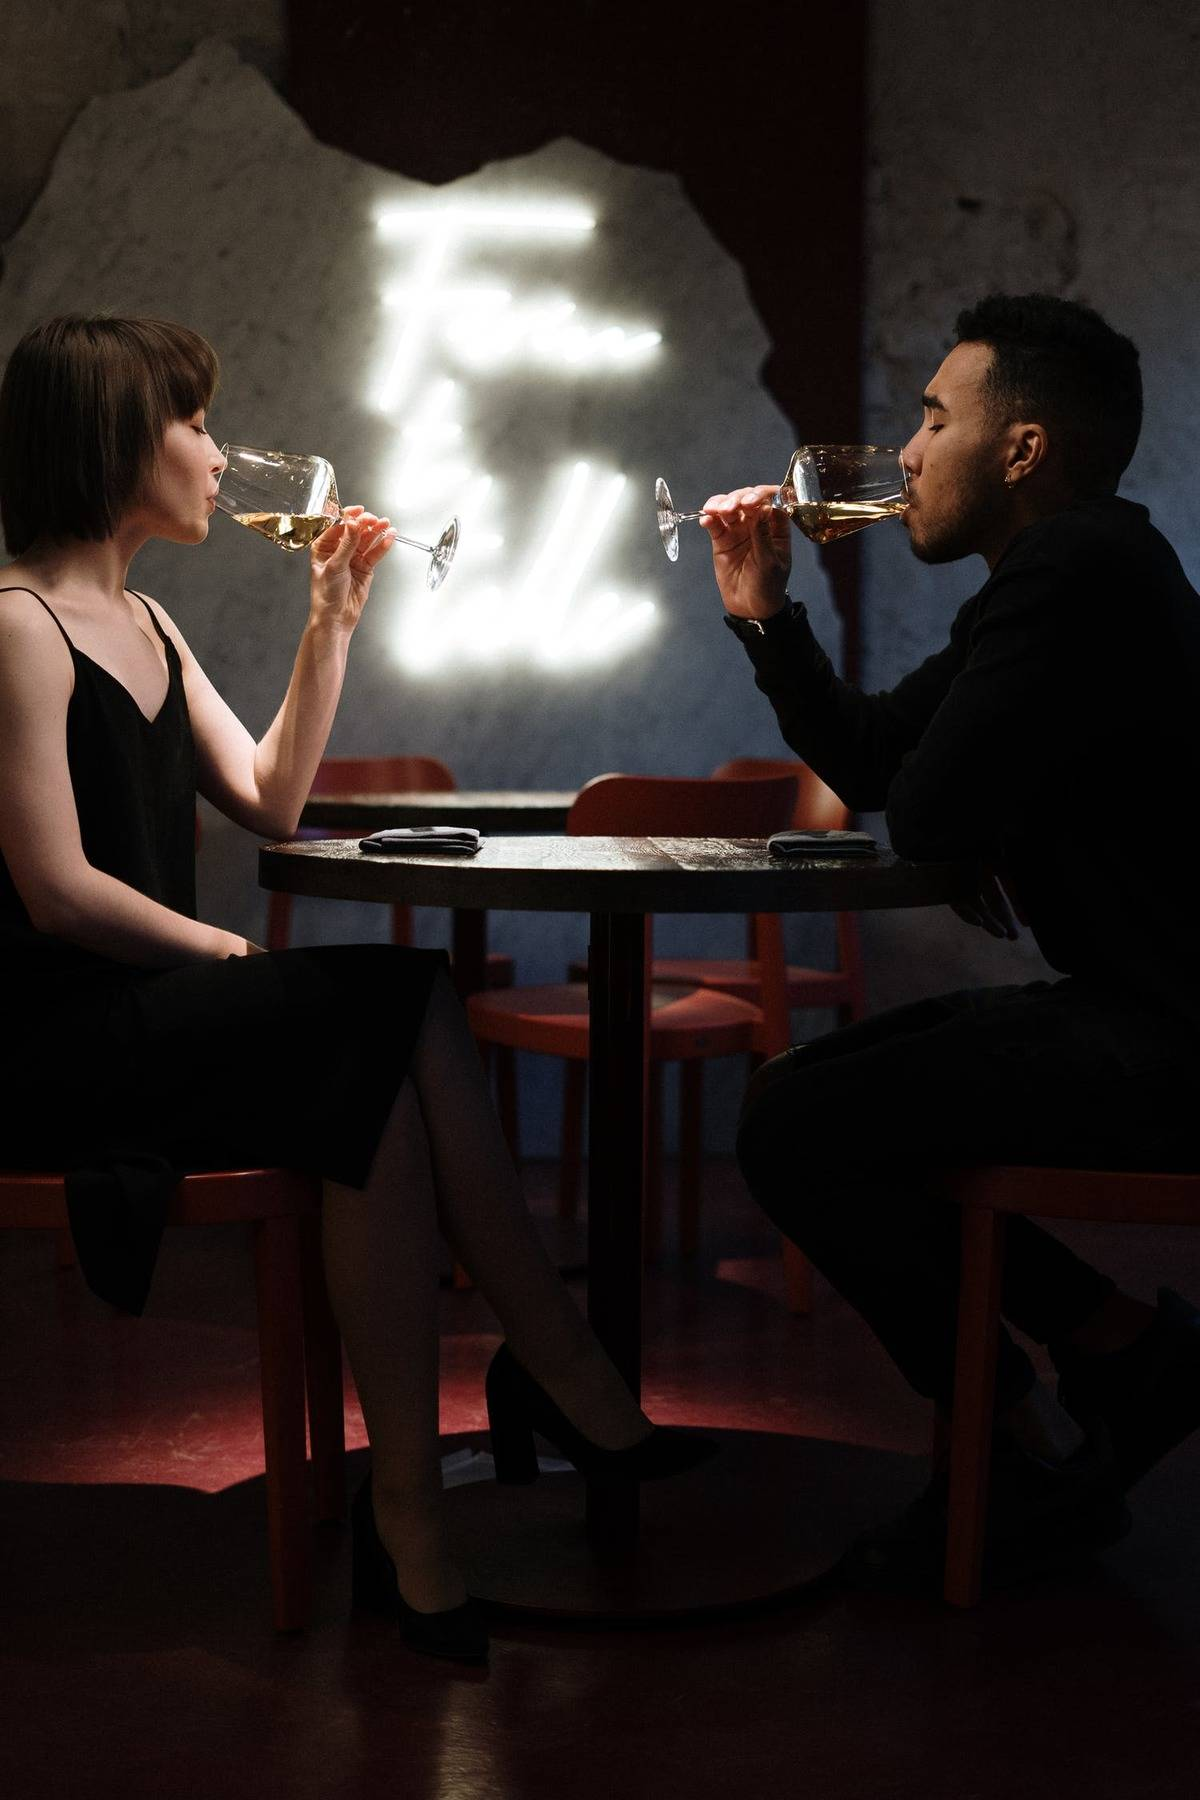 man and woman on date at restaurant